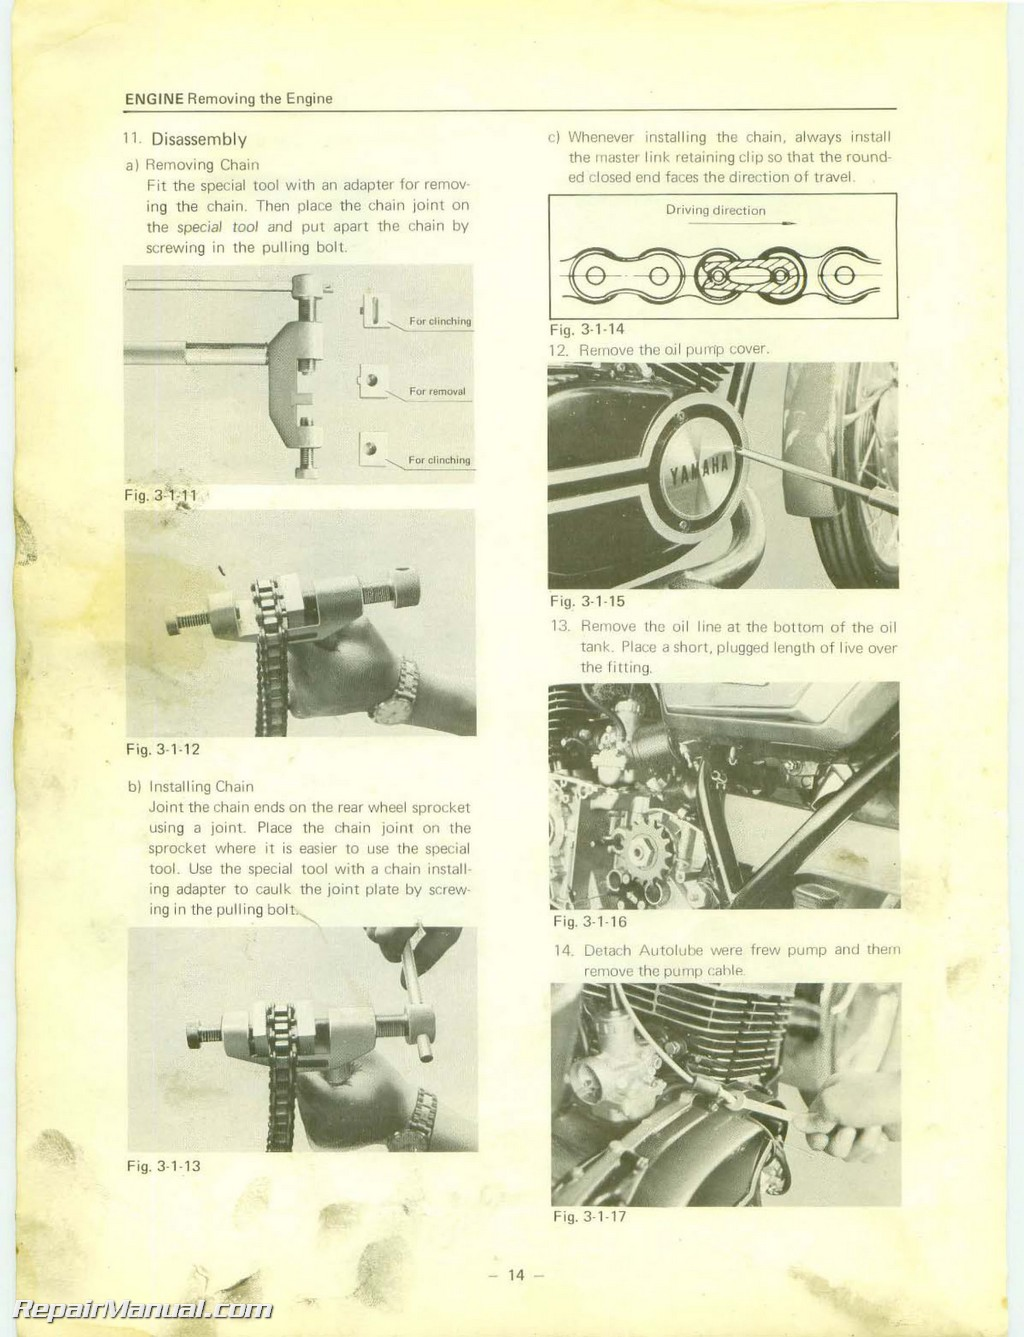 1975 Yamaha Rd 350 Owners Manual